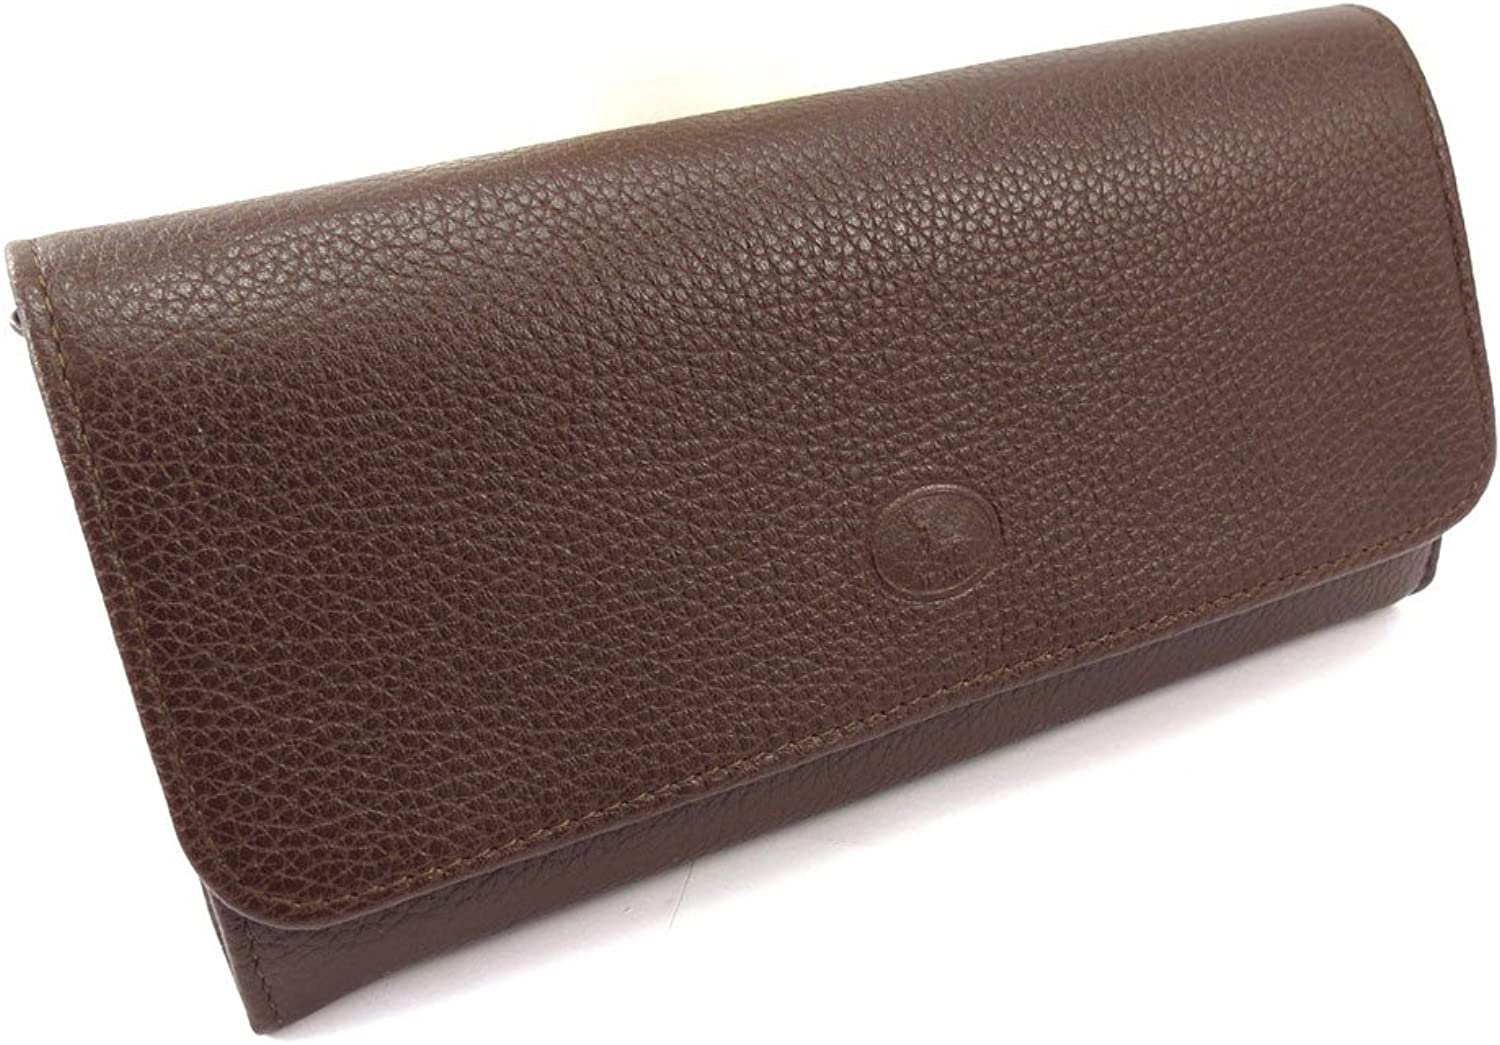 Large leather wallet 'Frandi' brown grained.